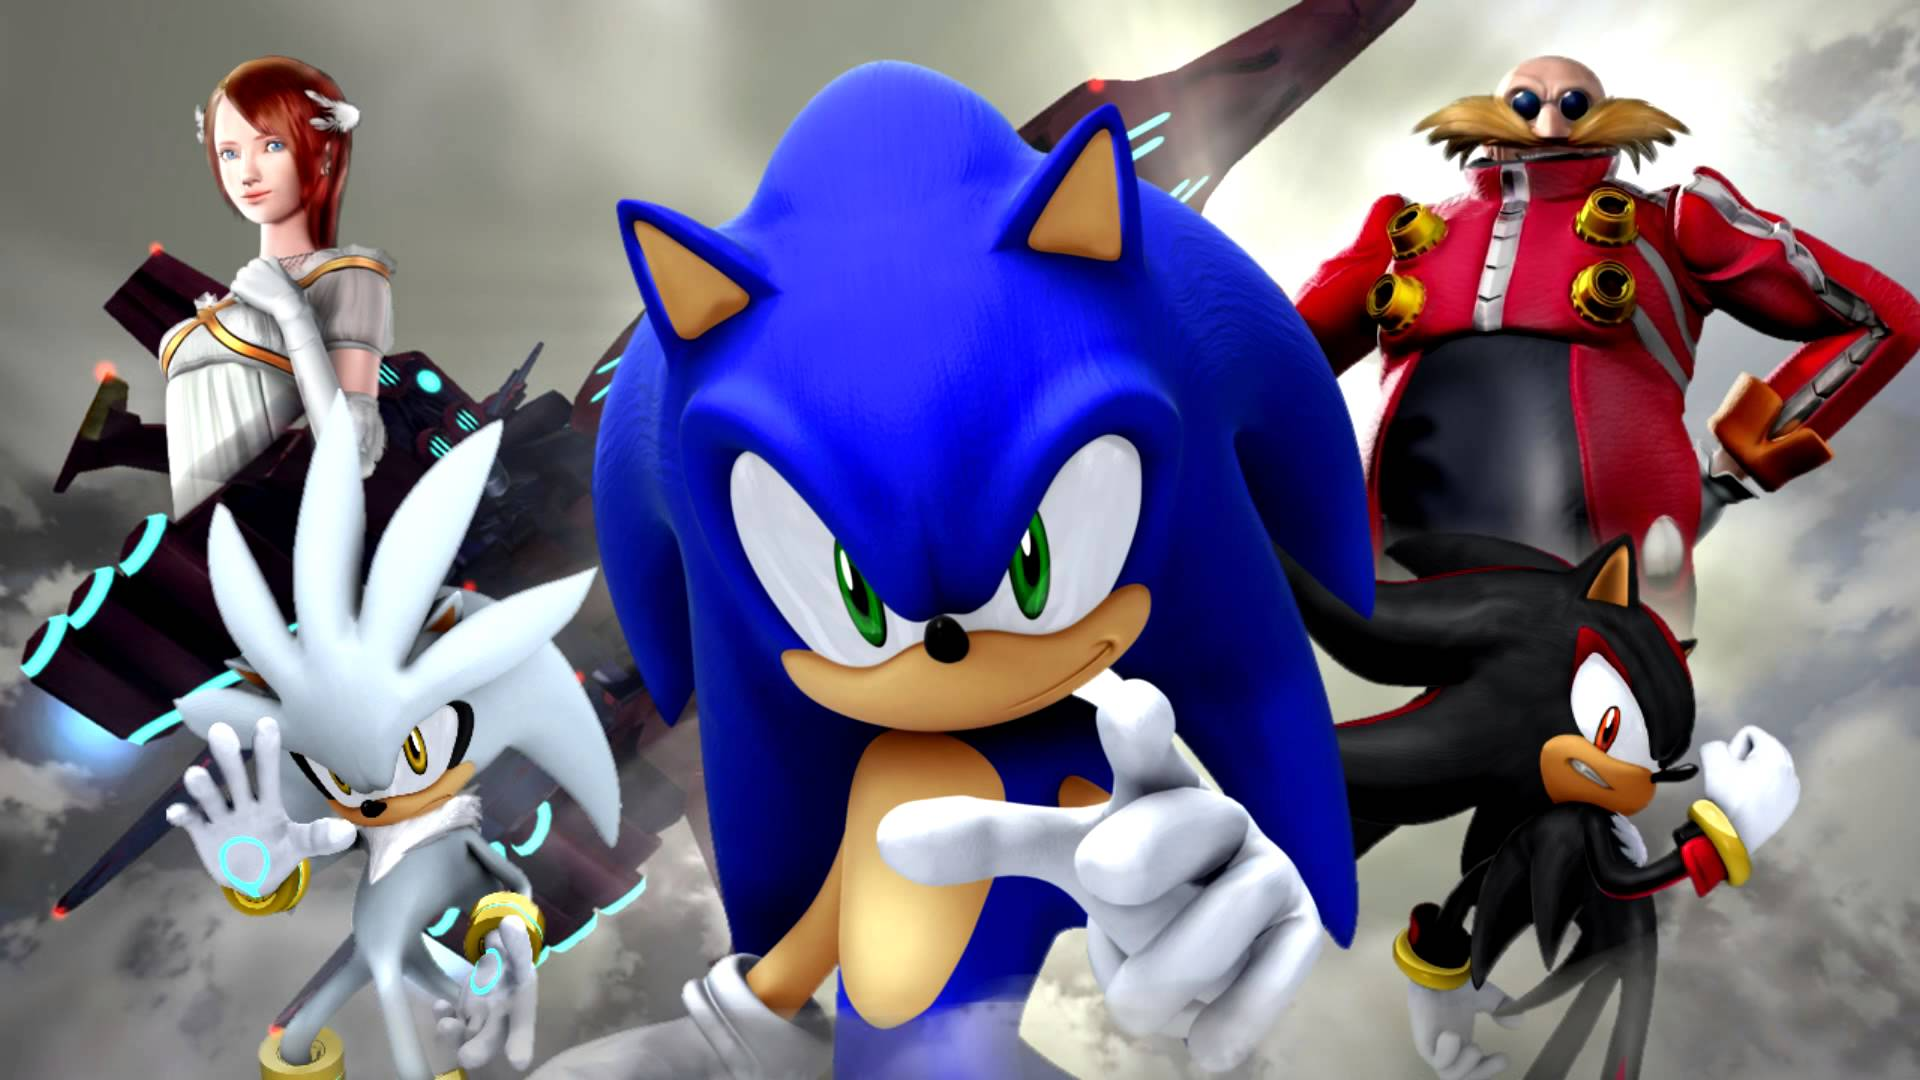 Sonic The Hedgehog (2006) wallpapers, Video Game, HQ Sonic